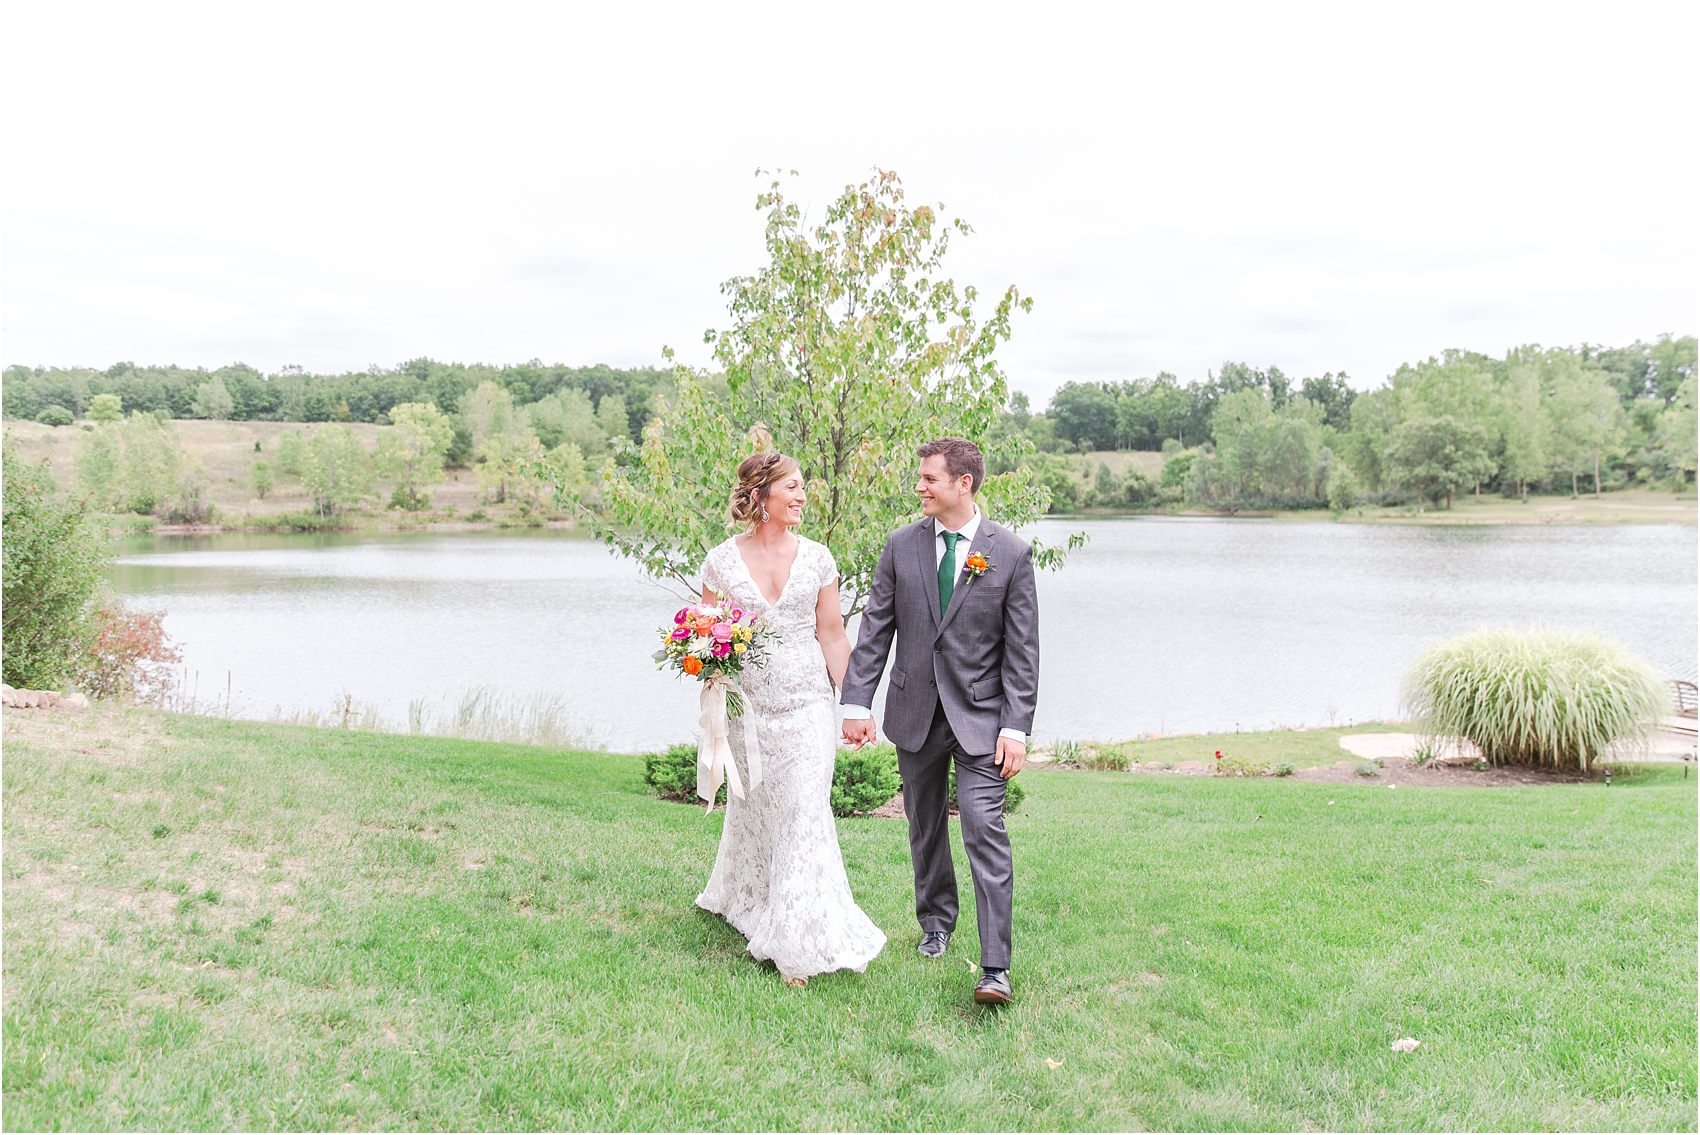 romantic-intimate-backyard-wedding-photos-at-private-estate-in-ann-arbor-mi-by-courtney-carolyn-photography_0053.jpg